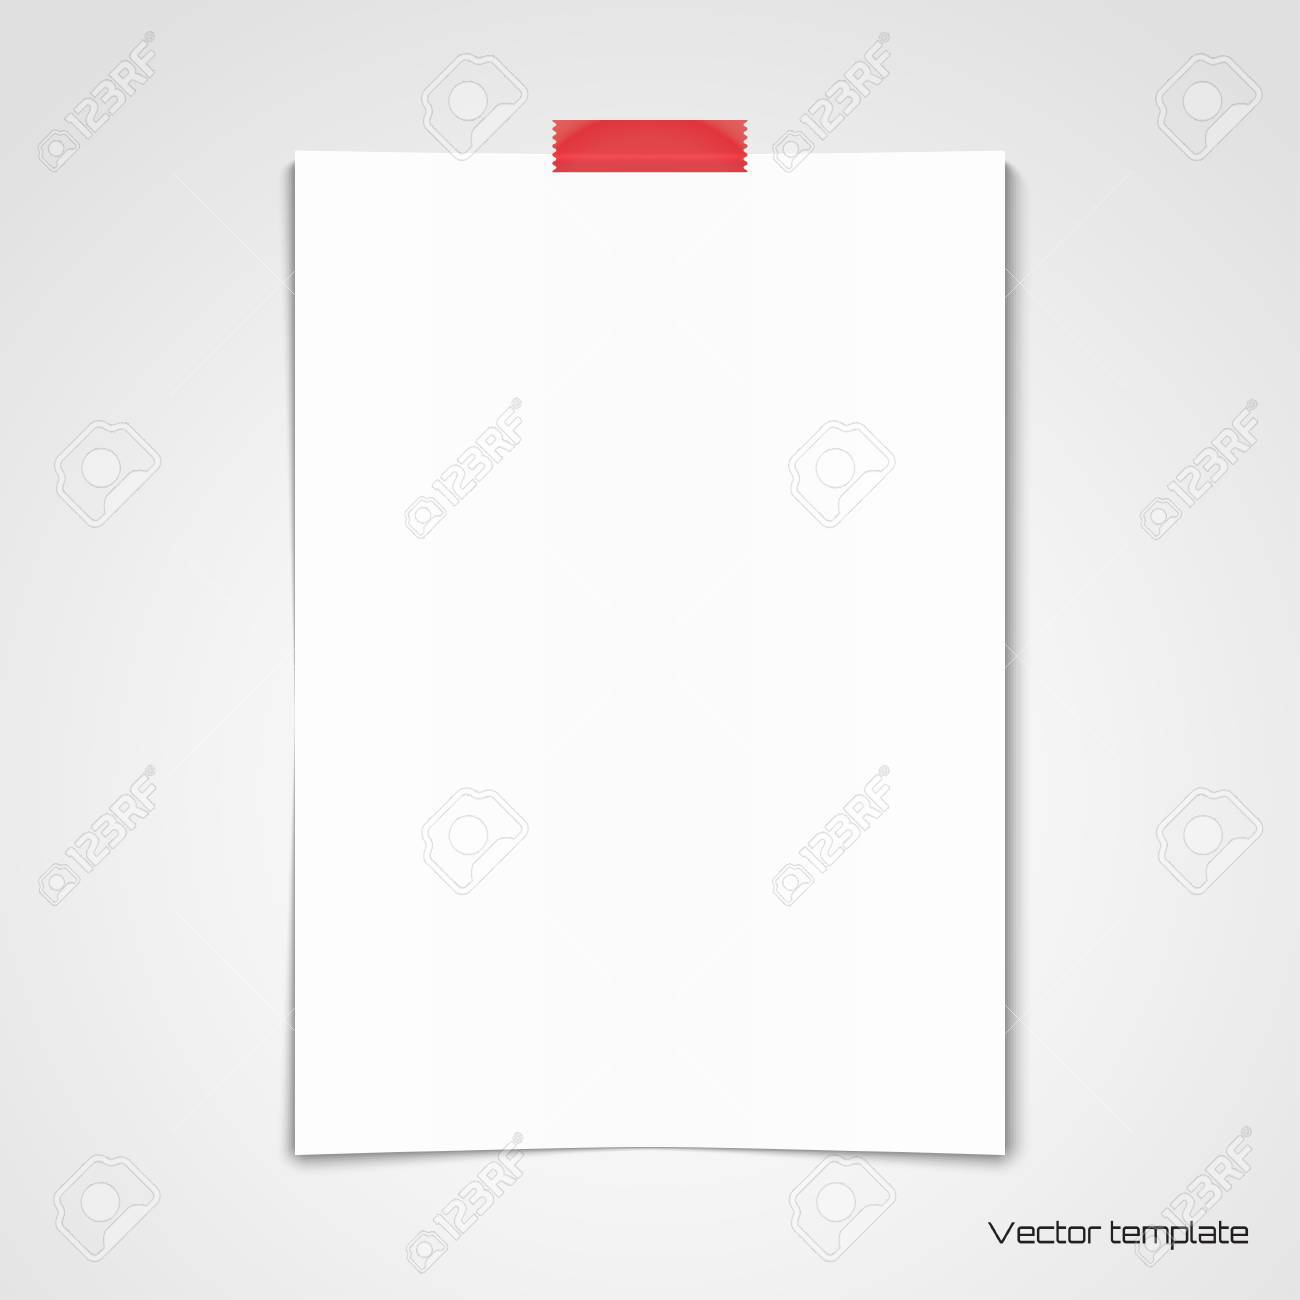 vector template white sheet of paper glued with adhesive tape